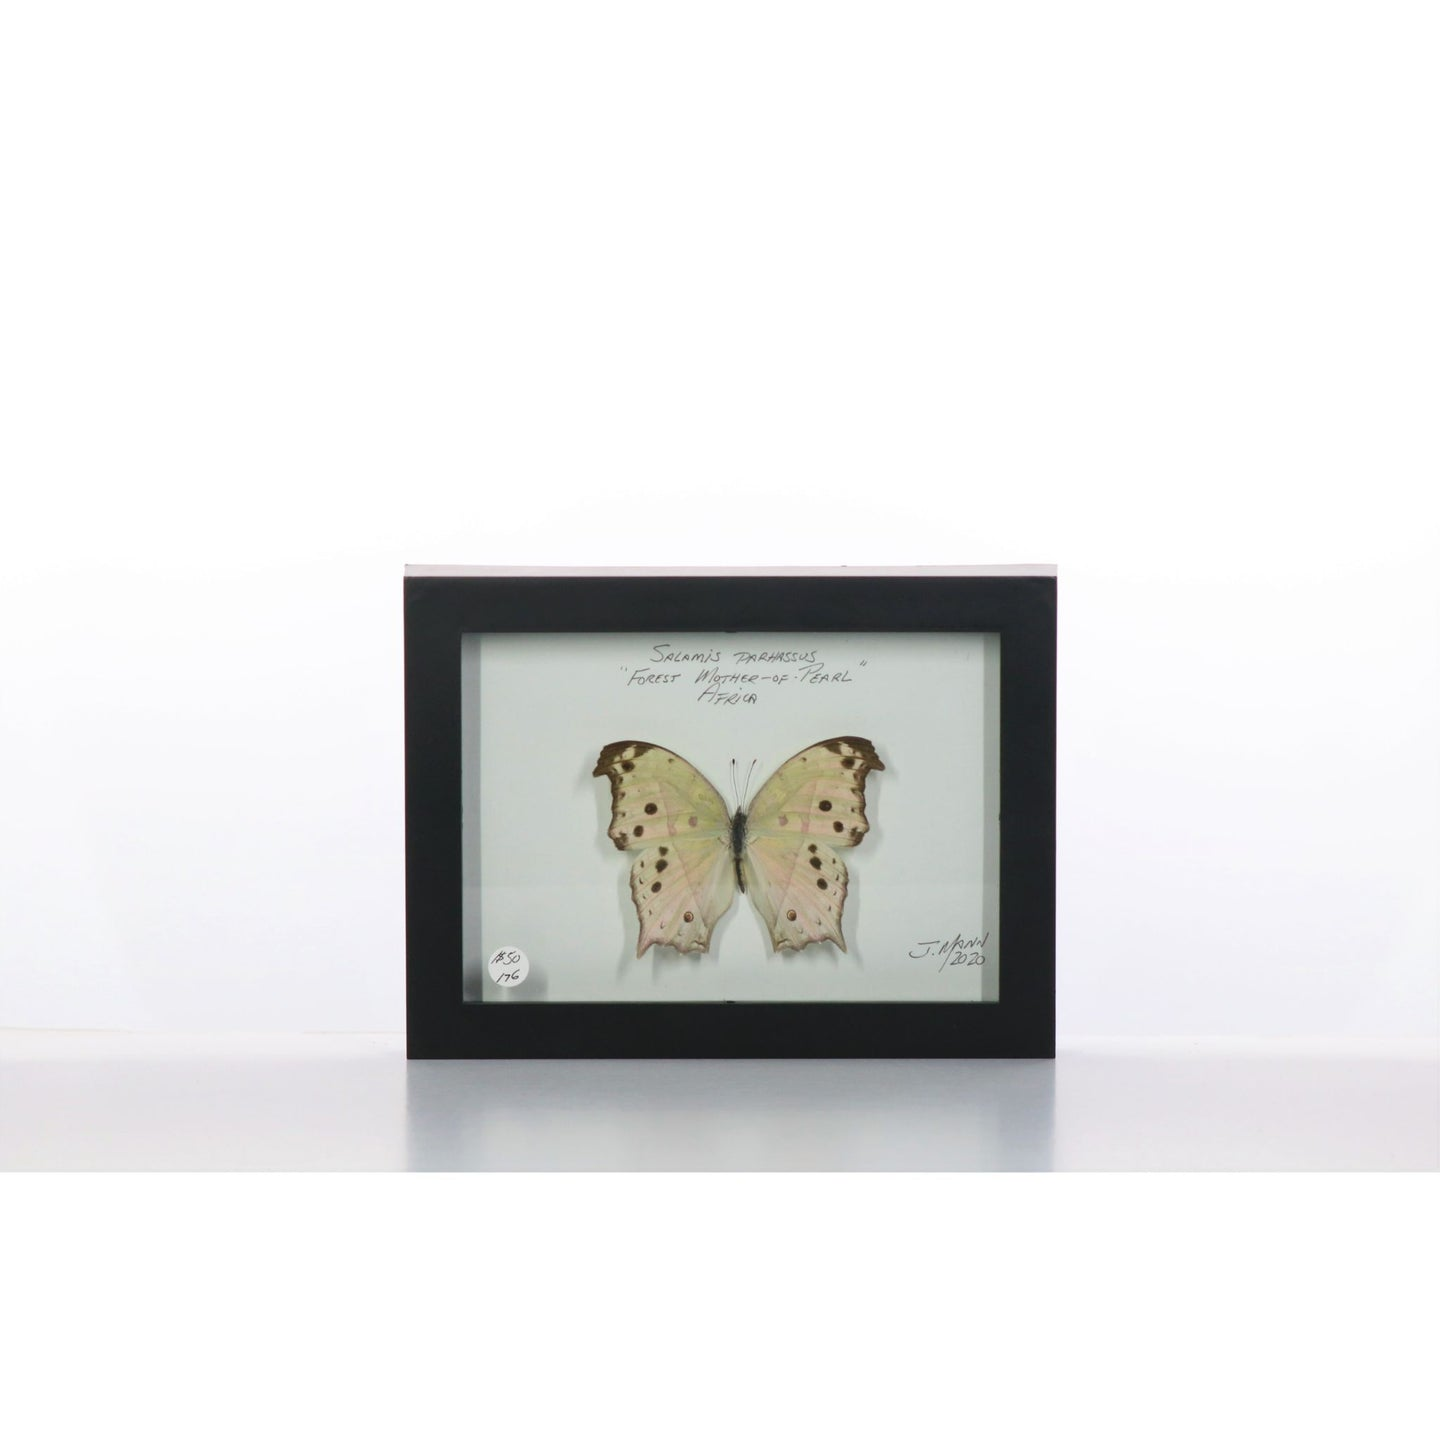 Forest Mother of Pearl Butterfly 5x7 Black #176 Framed Art - Insecta Etcetera